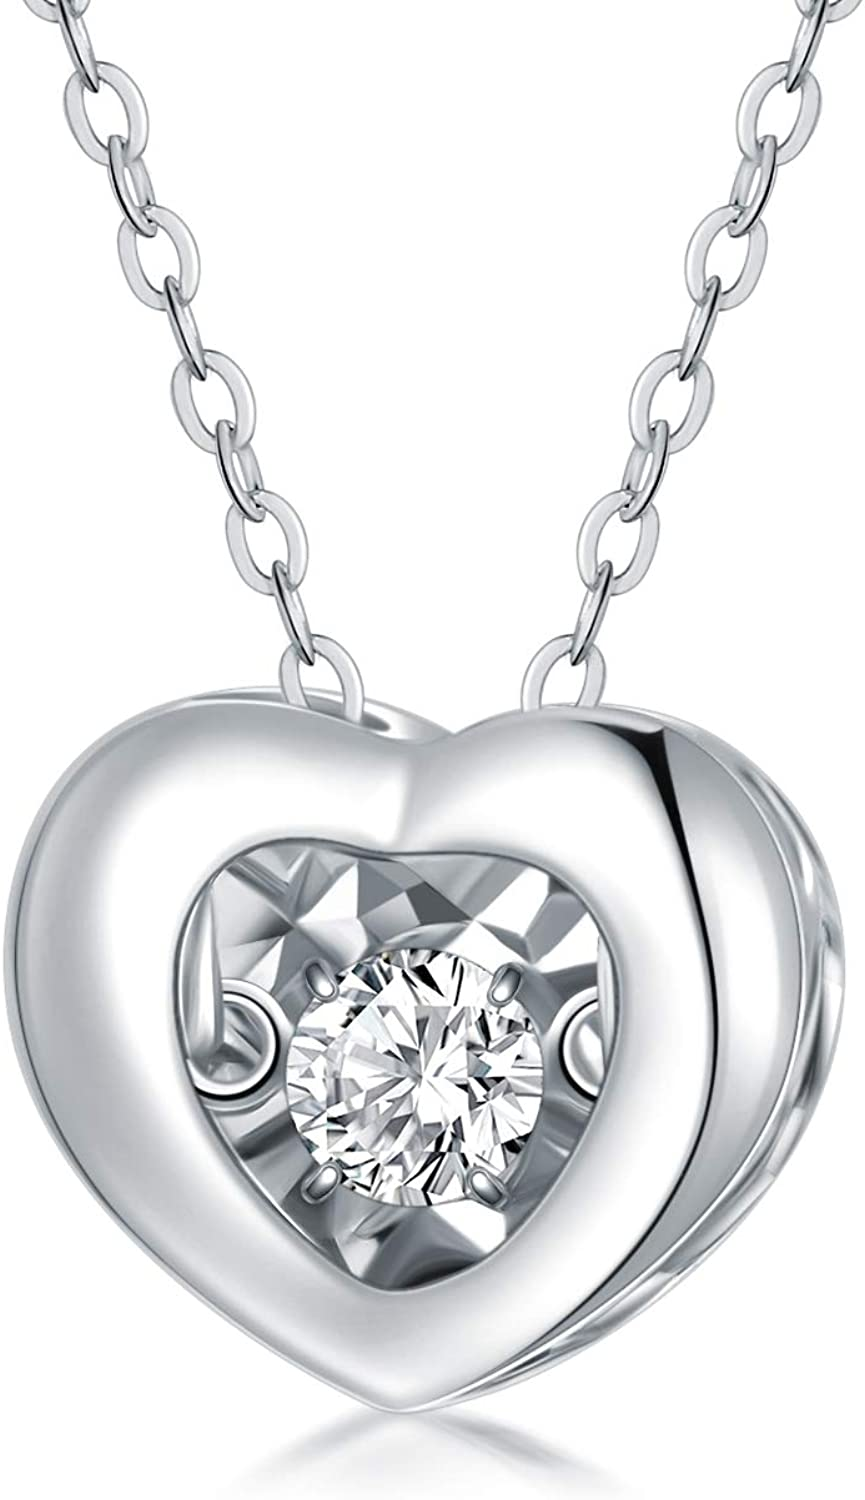 Heart pendant Gold Heart with zircons Anniversary gift Heart Necklace Romantic gifts for her